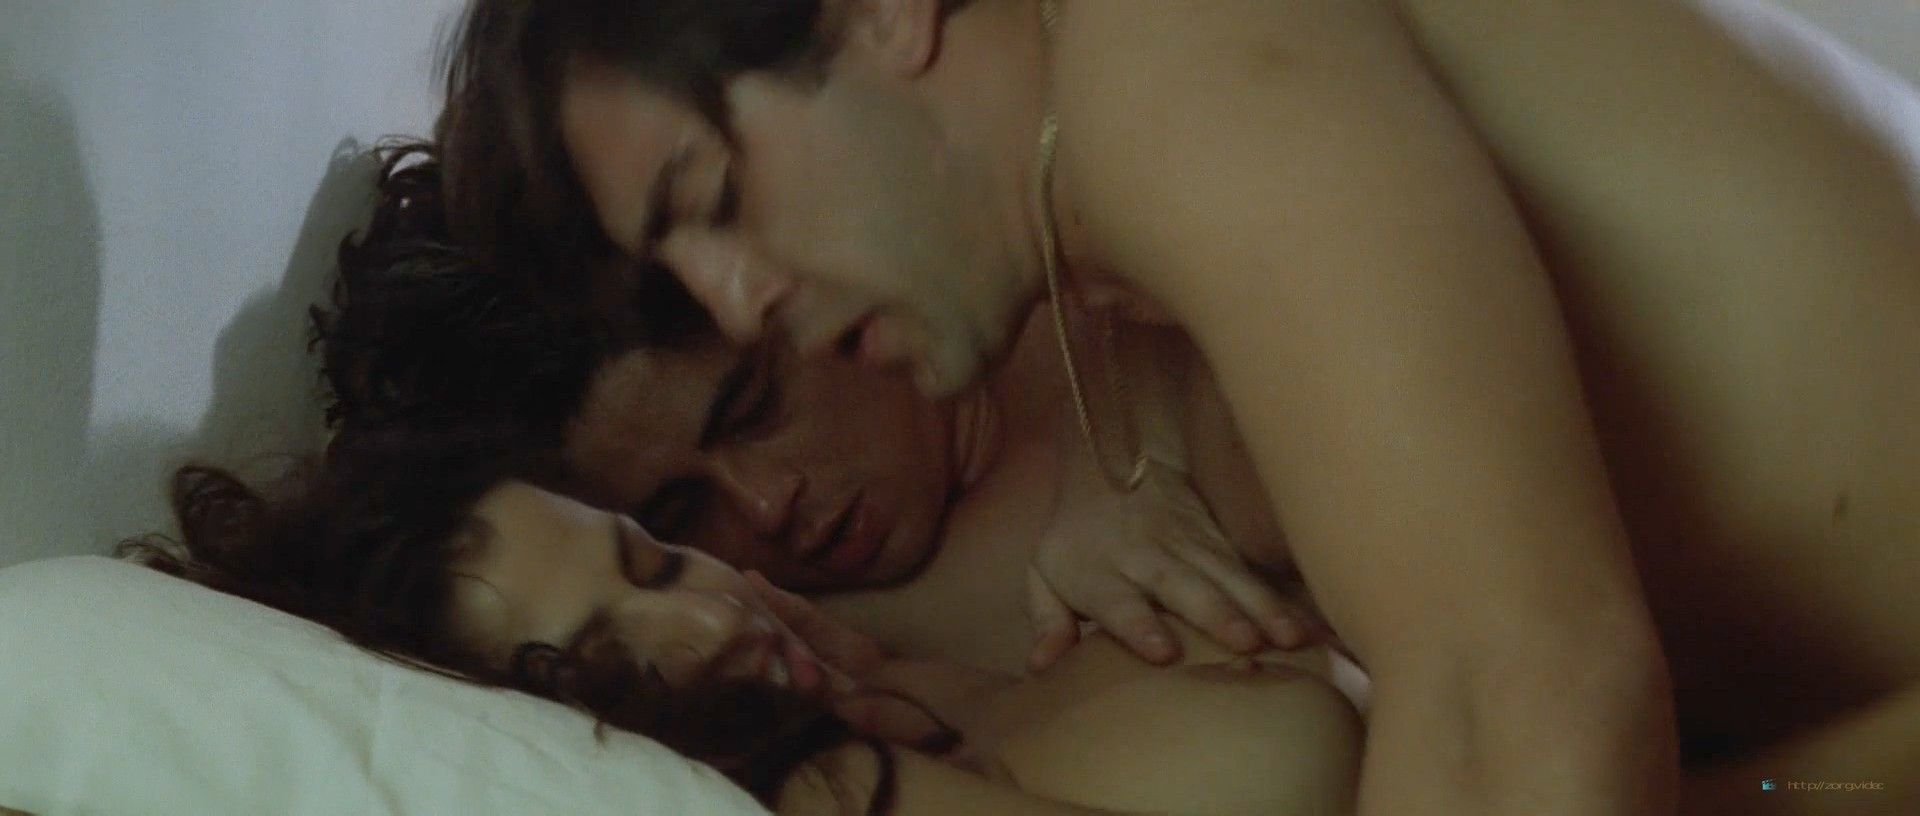 Maribel Verdú nude full frontal Maria de Medeiros and others nude - Huevos de oro (ES-1993) HD 1080p BluRay (3)